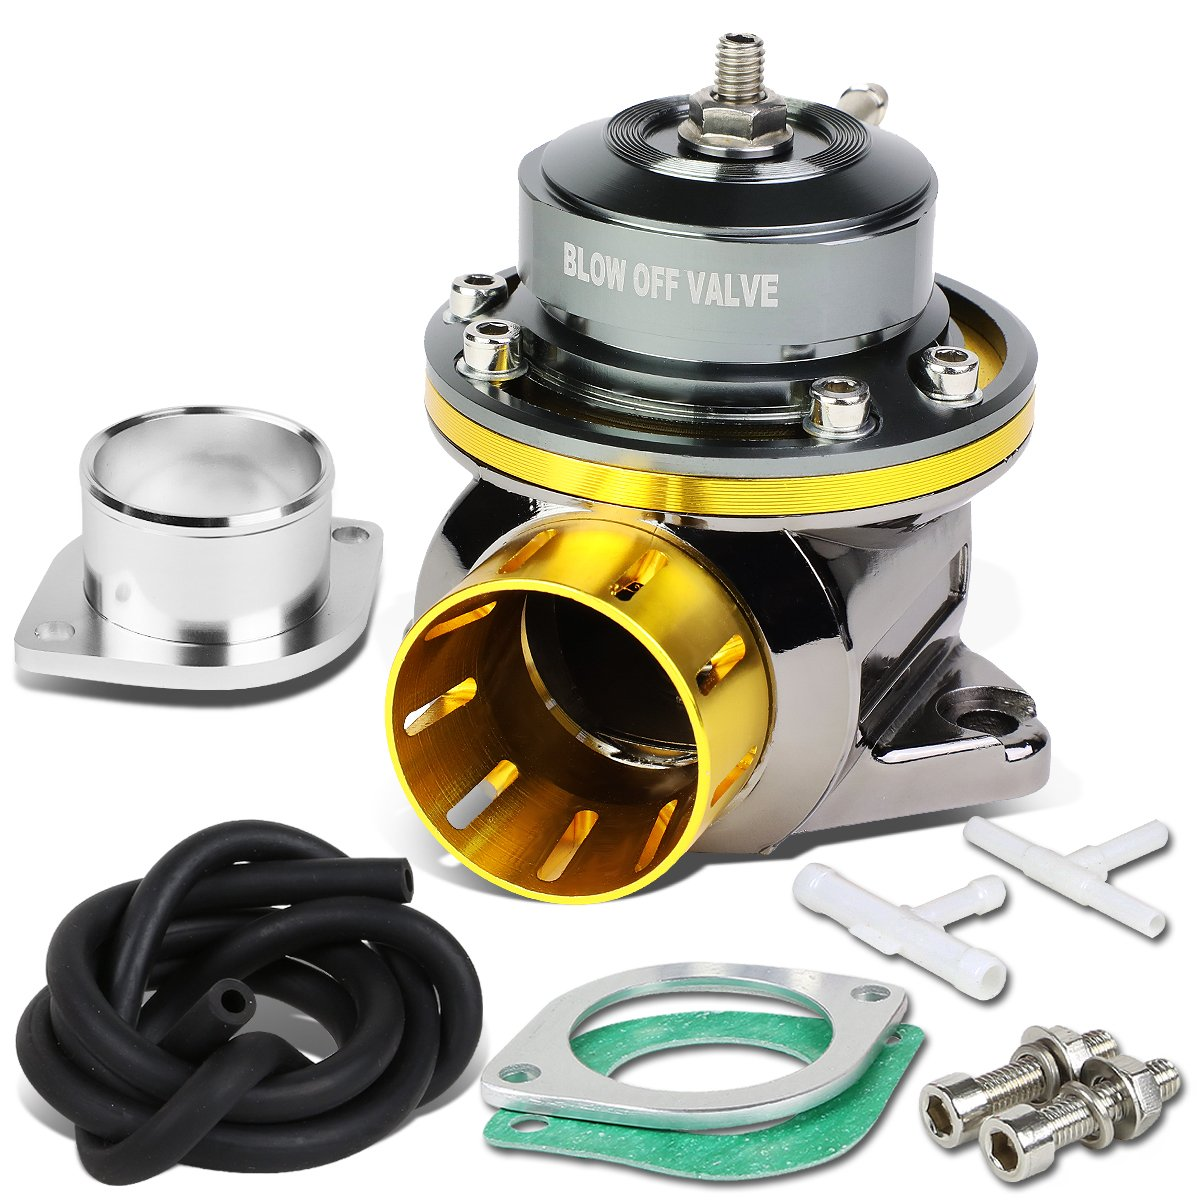 DNA Motoring PT-ZTL-8012-GD Blow-Off valve-BOV (Gold)